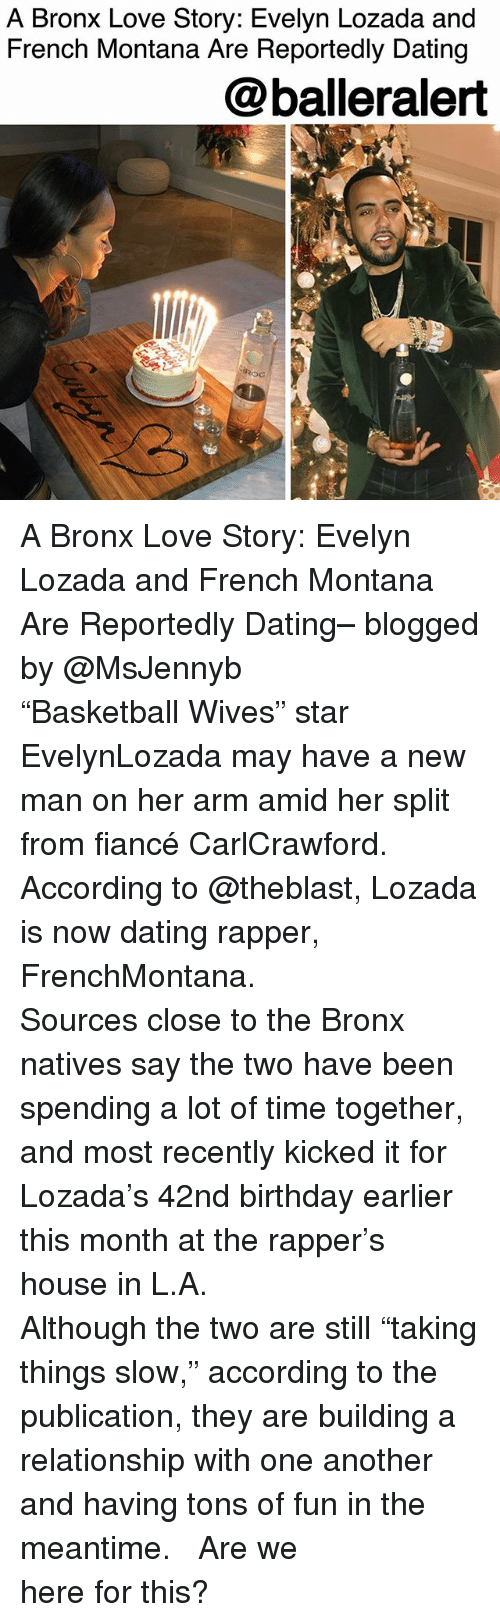 """Birthday, Dating, and Love: A Bronx Love Story: Evelyn Lozada and  French Montana Are Reportedly Dating  @balleralert  ROC  Roc A Bronx Love Story: Evelyn Lozada and French Montana Are Reportedly Dating– blogged by @MsJennyb ⠀⠀⠀⠀⠀⠀⠀ ⠀⠀⠀⠀⠀⠀⠀ """"Basketball Wives"""" star EvelynLozada may have a new man on her arm amid her split from fiancé CarlCrawford. According to @theblast, Lozada is now dating rapper, FrenchMontana. ⠀⠀⠀⠀⠀⠀⠀ ⠀⠀⠀⠀⠀⠀⠀ Sources close to the Bronx natives say the two have been spending a lot of time together, and most recently kicked it for Lozada's 42nd birthday earlier this month at the rapper's house in L.A. ⠀⠀⠀⠀⠀⠀⠀ ⠀⠀⠀⠀⠀⠀⠀ Although the two are still """"taking things slow,"""" according to the publication, they are building a relationship with one another and having tons of fun in the meantime. ⠀⠀⠀⠀⠀⠀⠀ ⠀⠀⠀⠀⠀⠀⠀ Are we here for this?"""